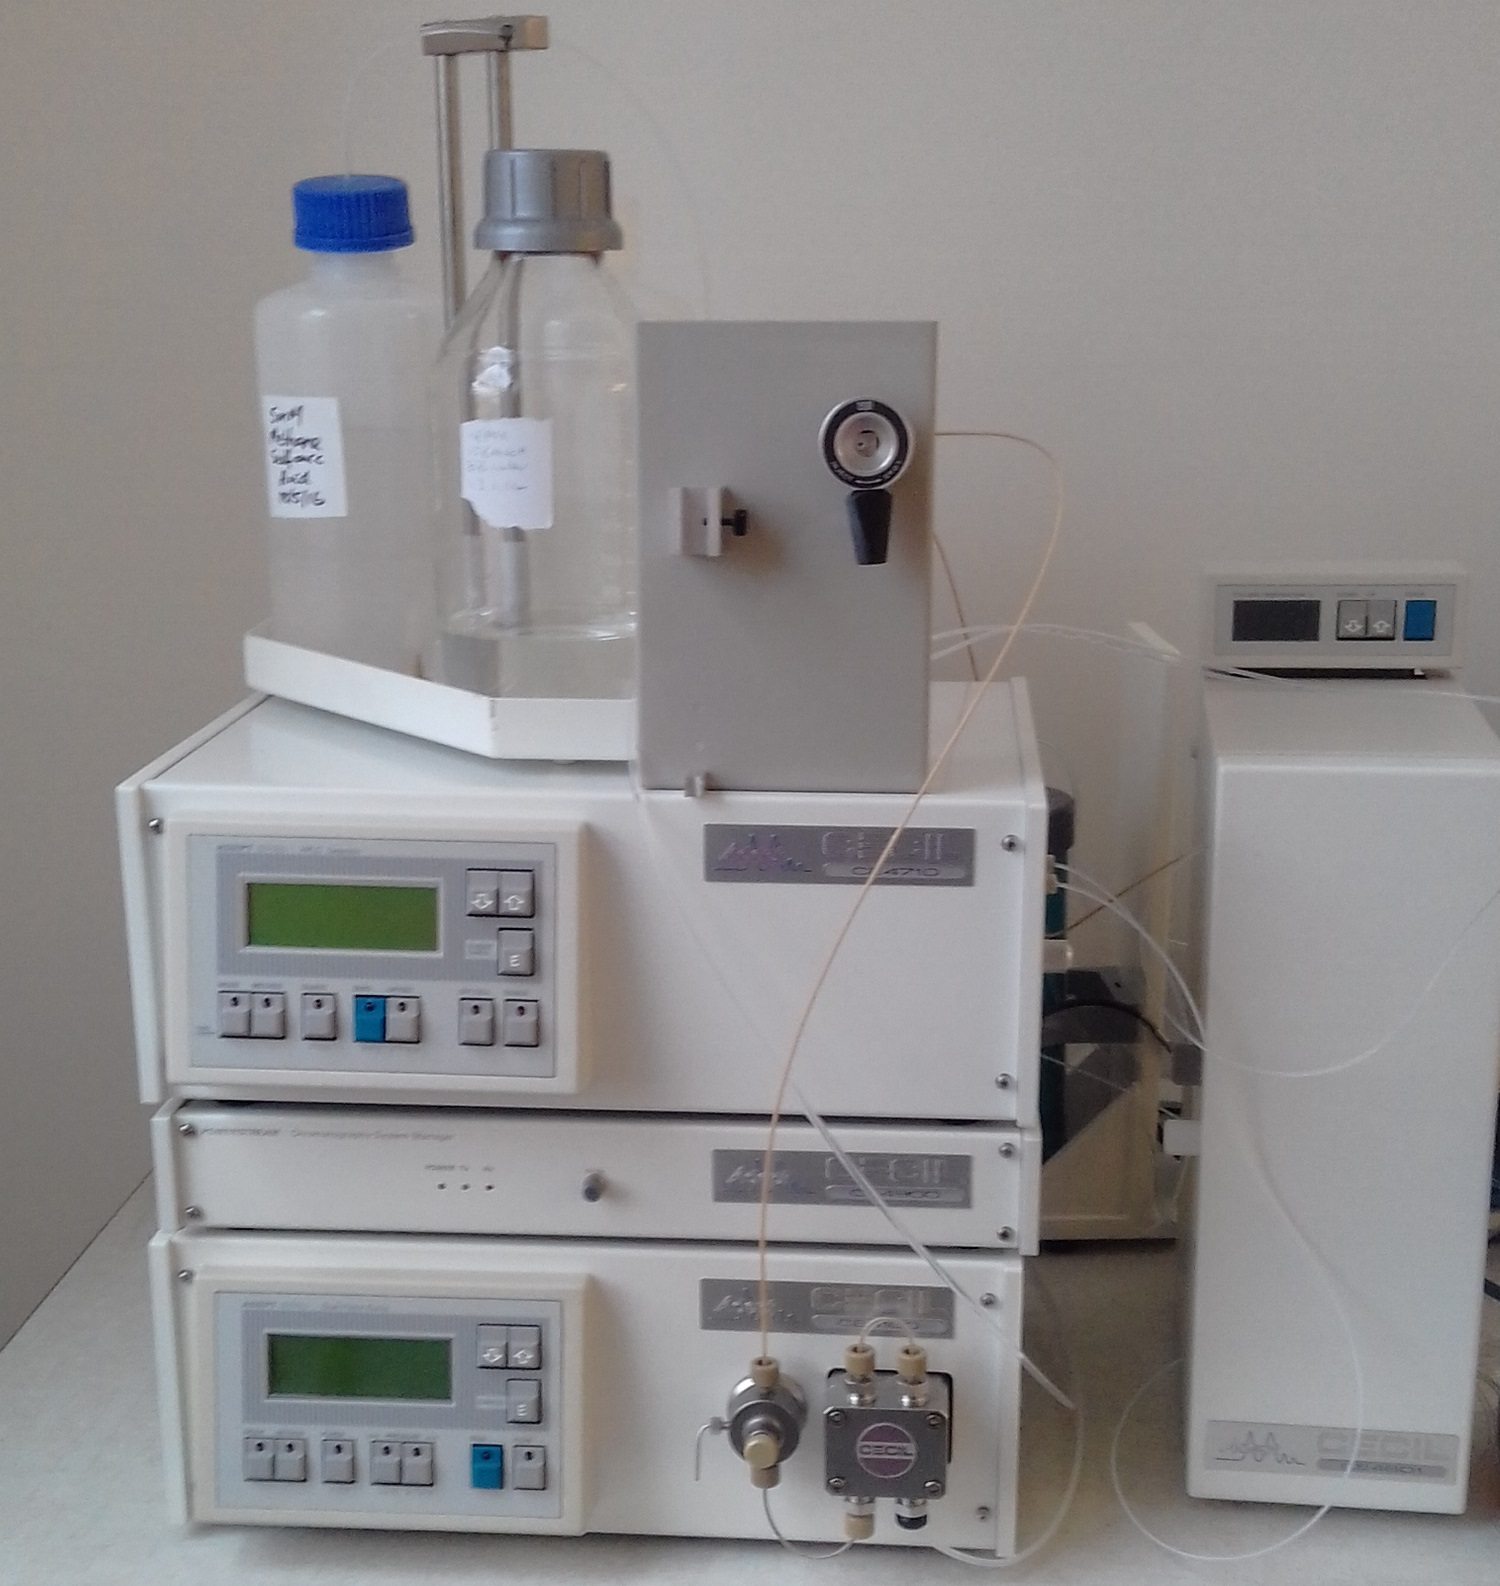 Chromatography systems Market Overview 2019, Global Industry Size to Surpass USD 11.5 billion By 2022, Business SWOT Analysis, Top Companies, Regional Statistics